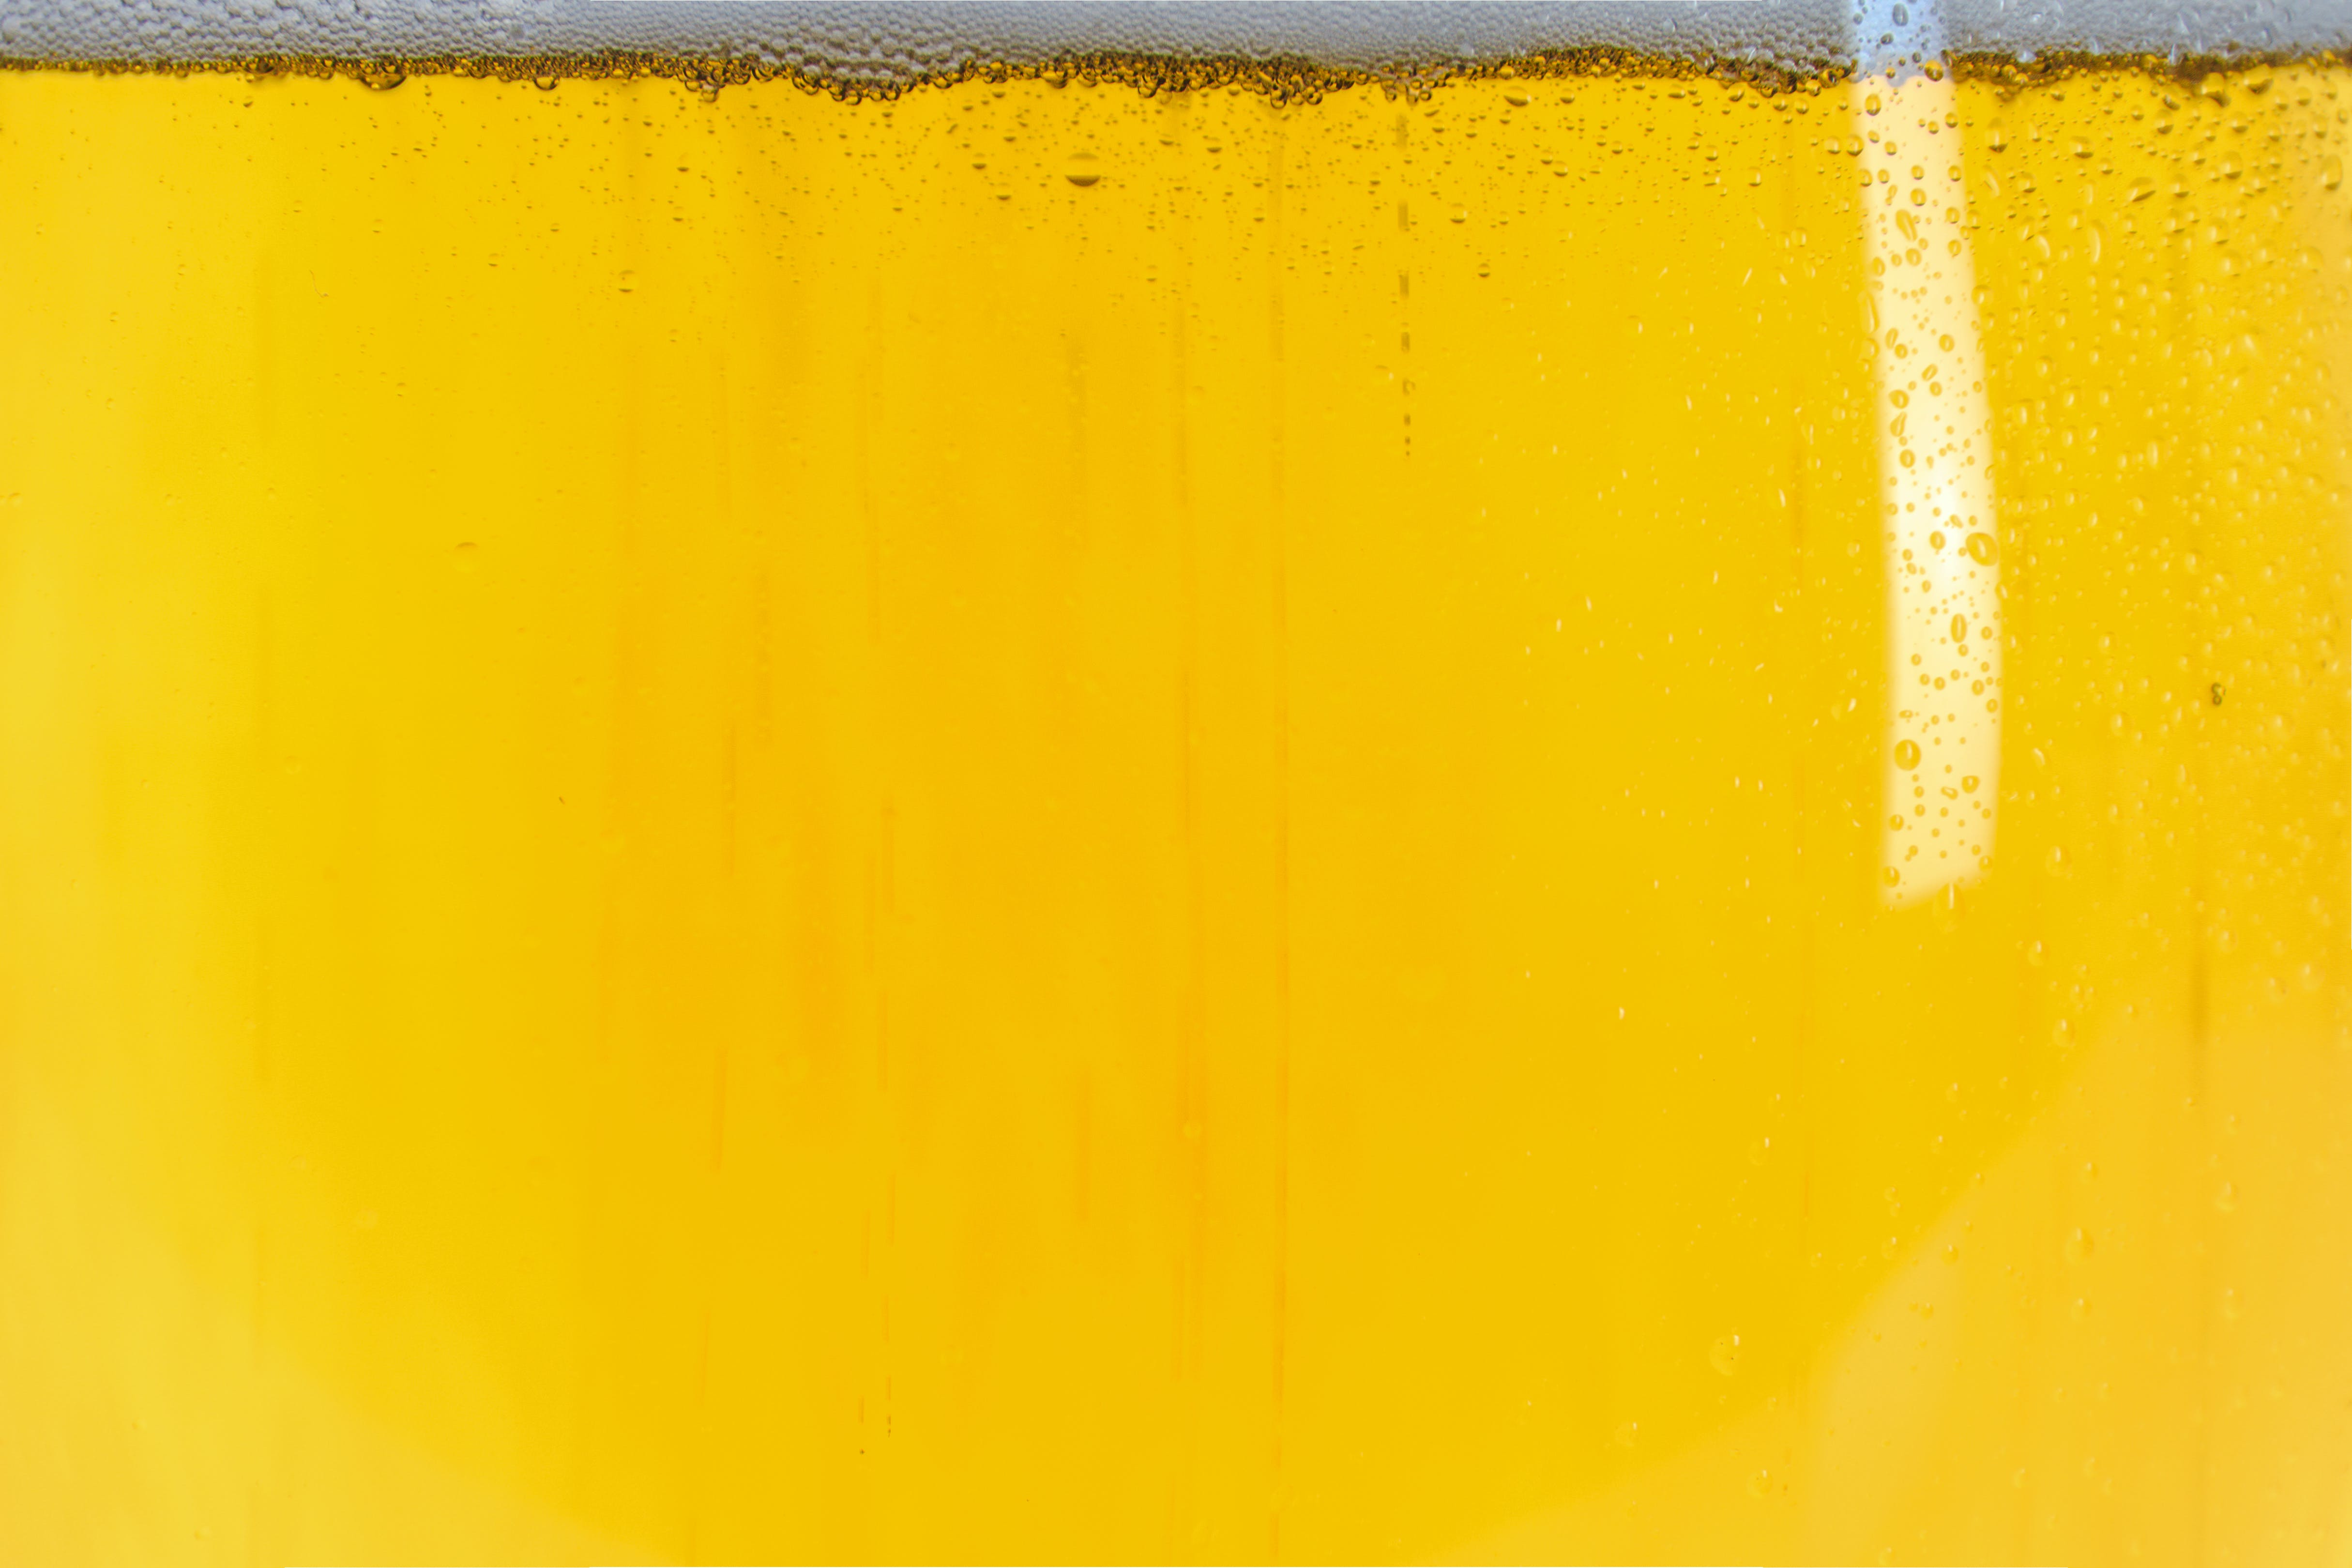 Free stock photo of cold, alcohol, bar, pattern